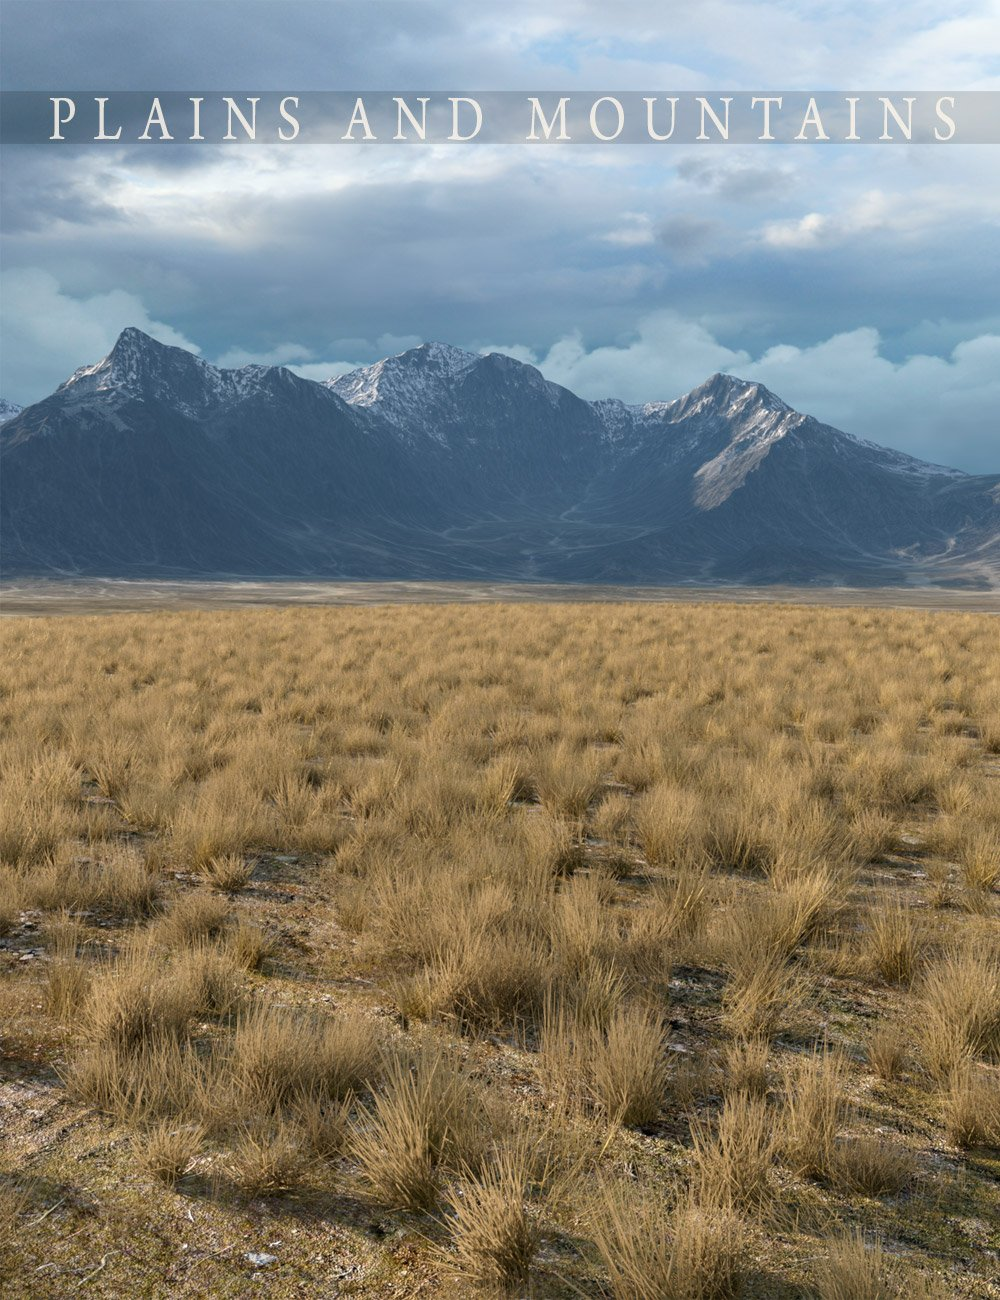 Plains and Mountains by: Aako, 3D Models by Daz 3D